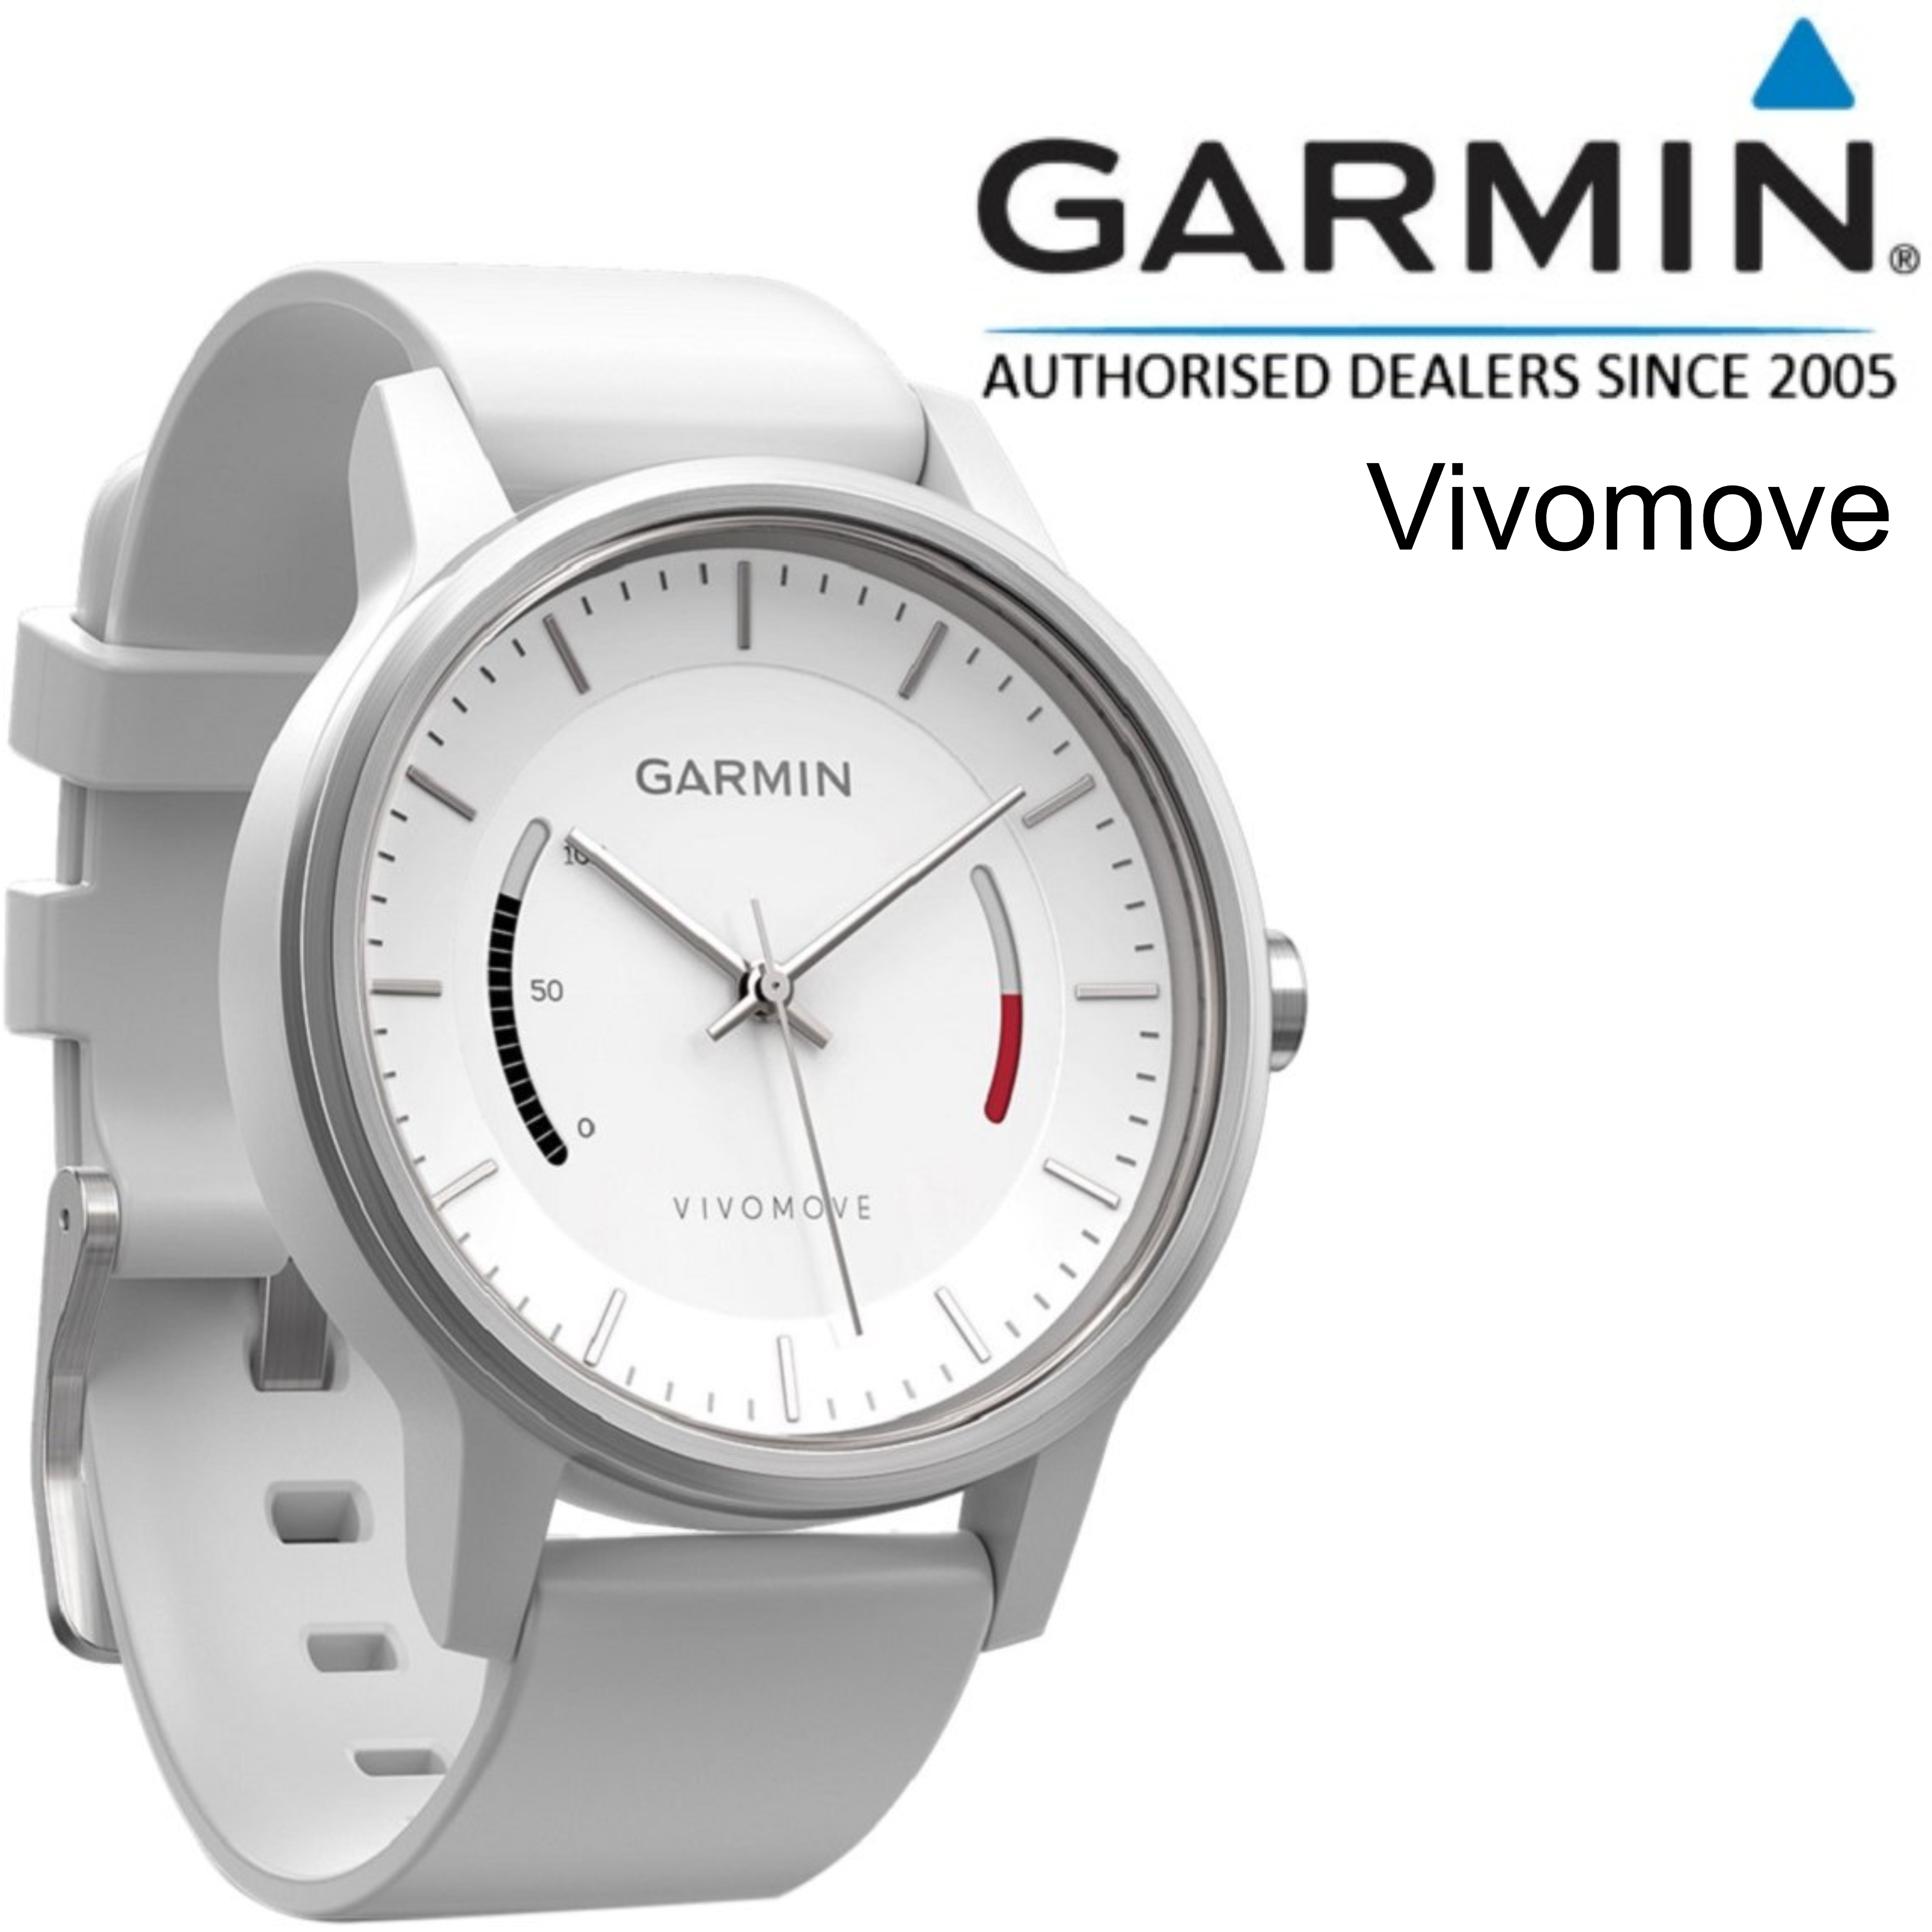 Garmin Vivomove Analog Sports Watch | Activity Fitness Tracker | Sleep Monitor | White